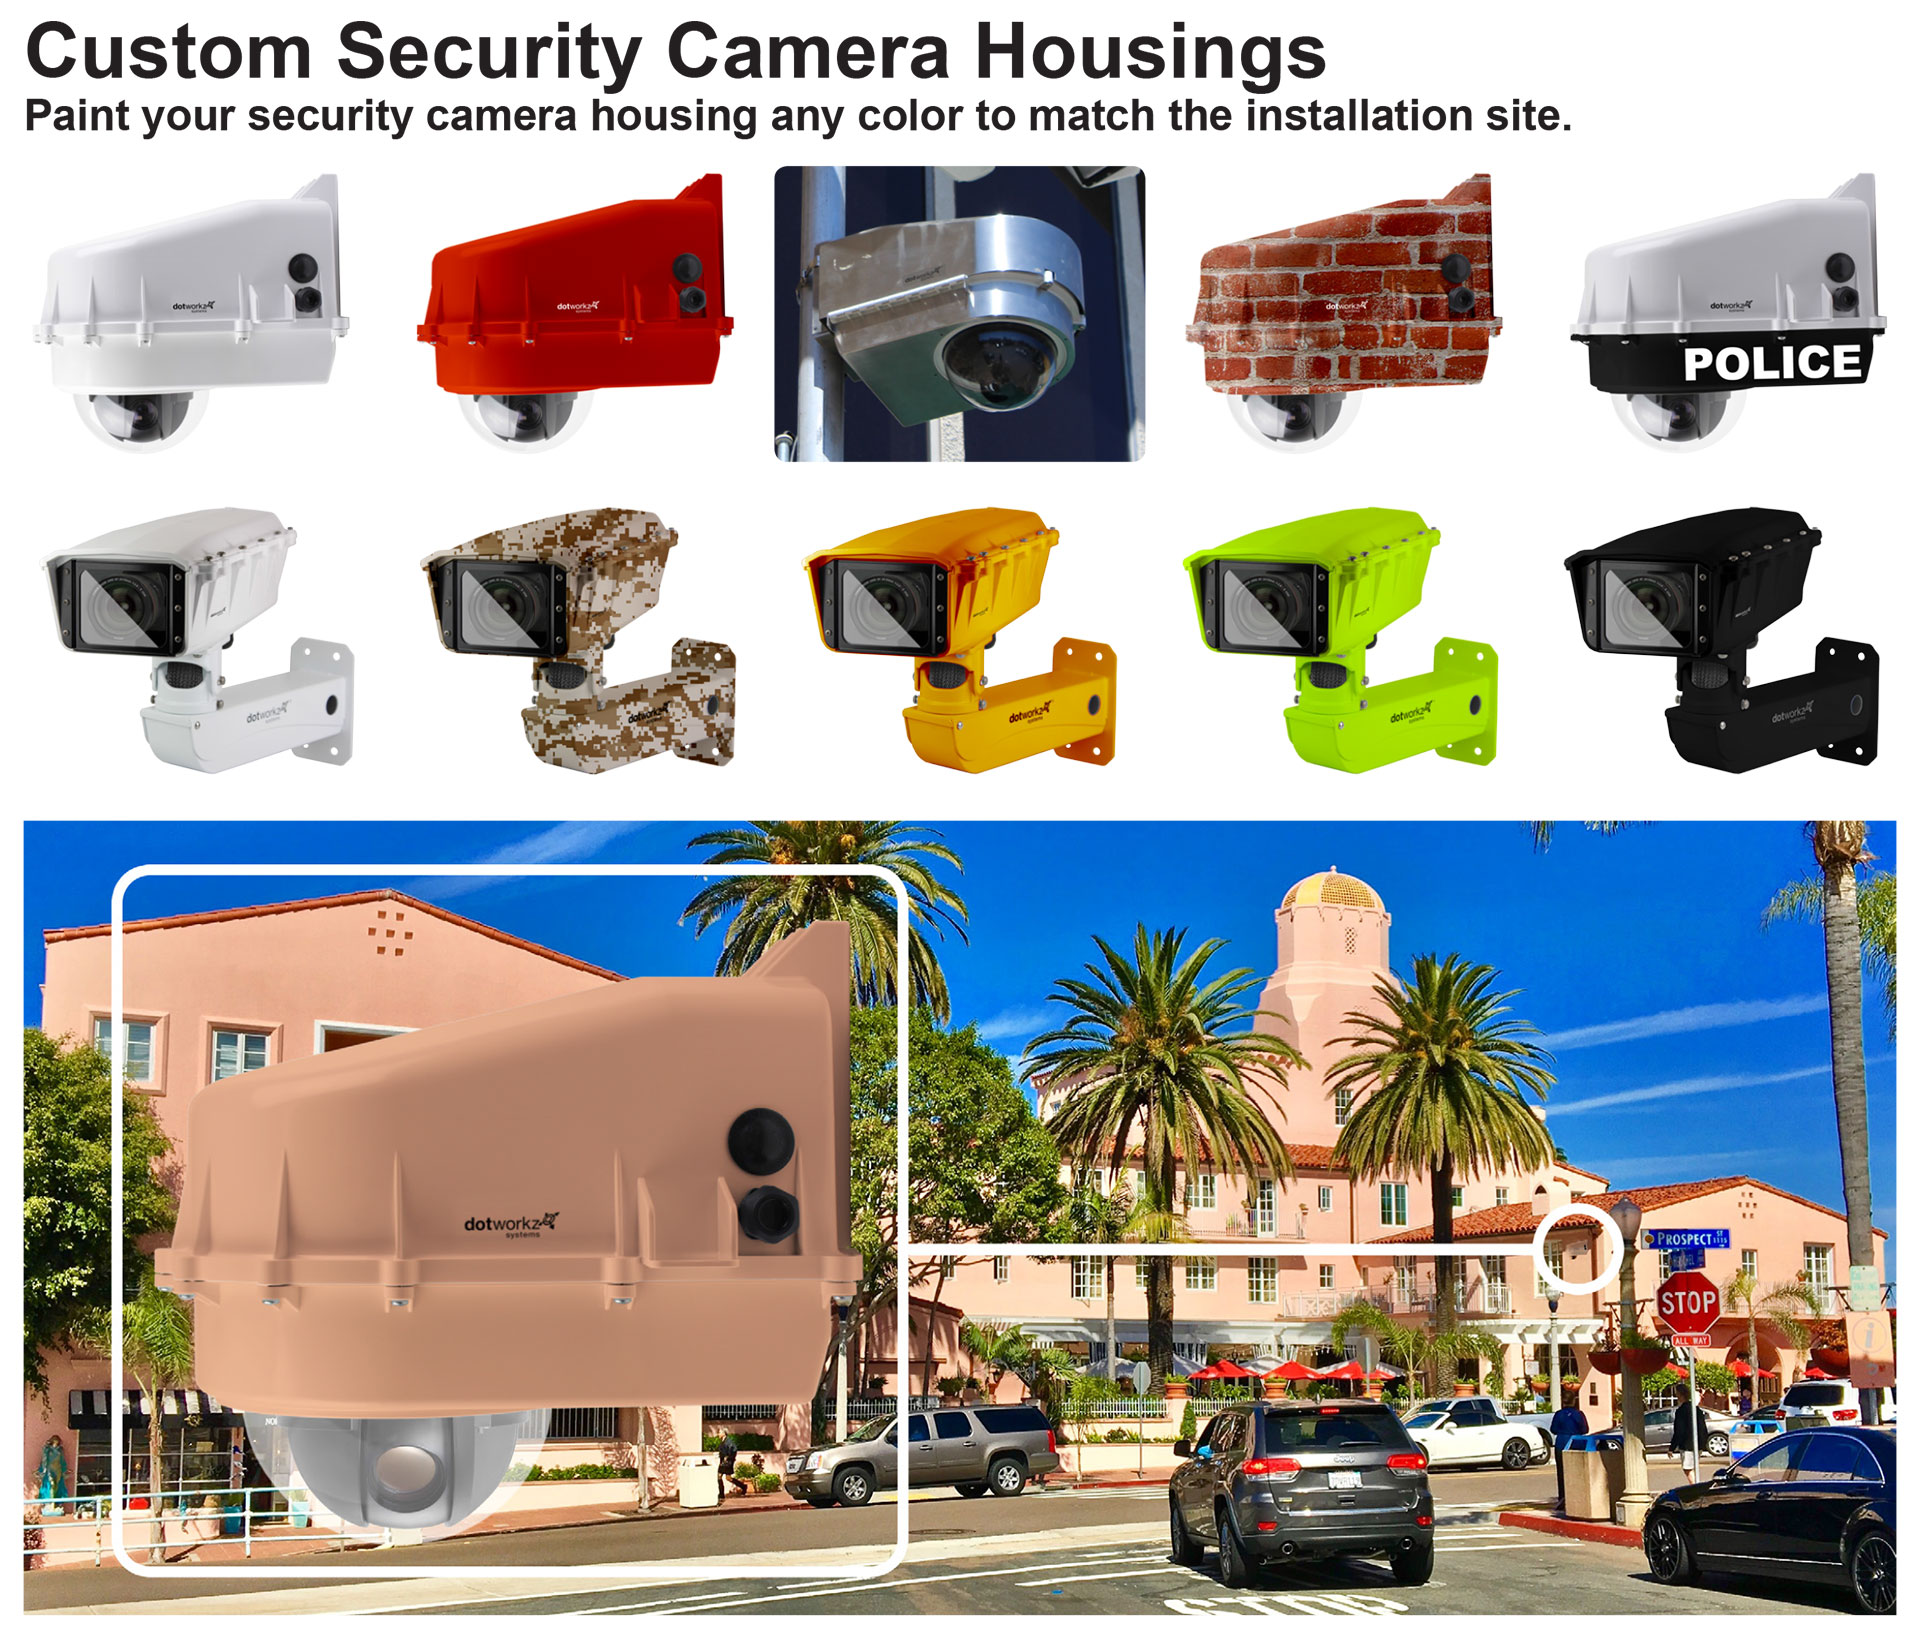 Dotworkz Custom Security Camera Housings Paint your security camera housing any color to match the installation site